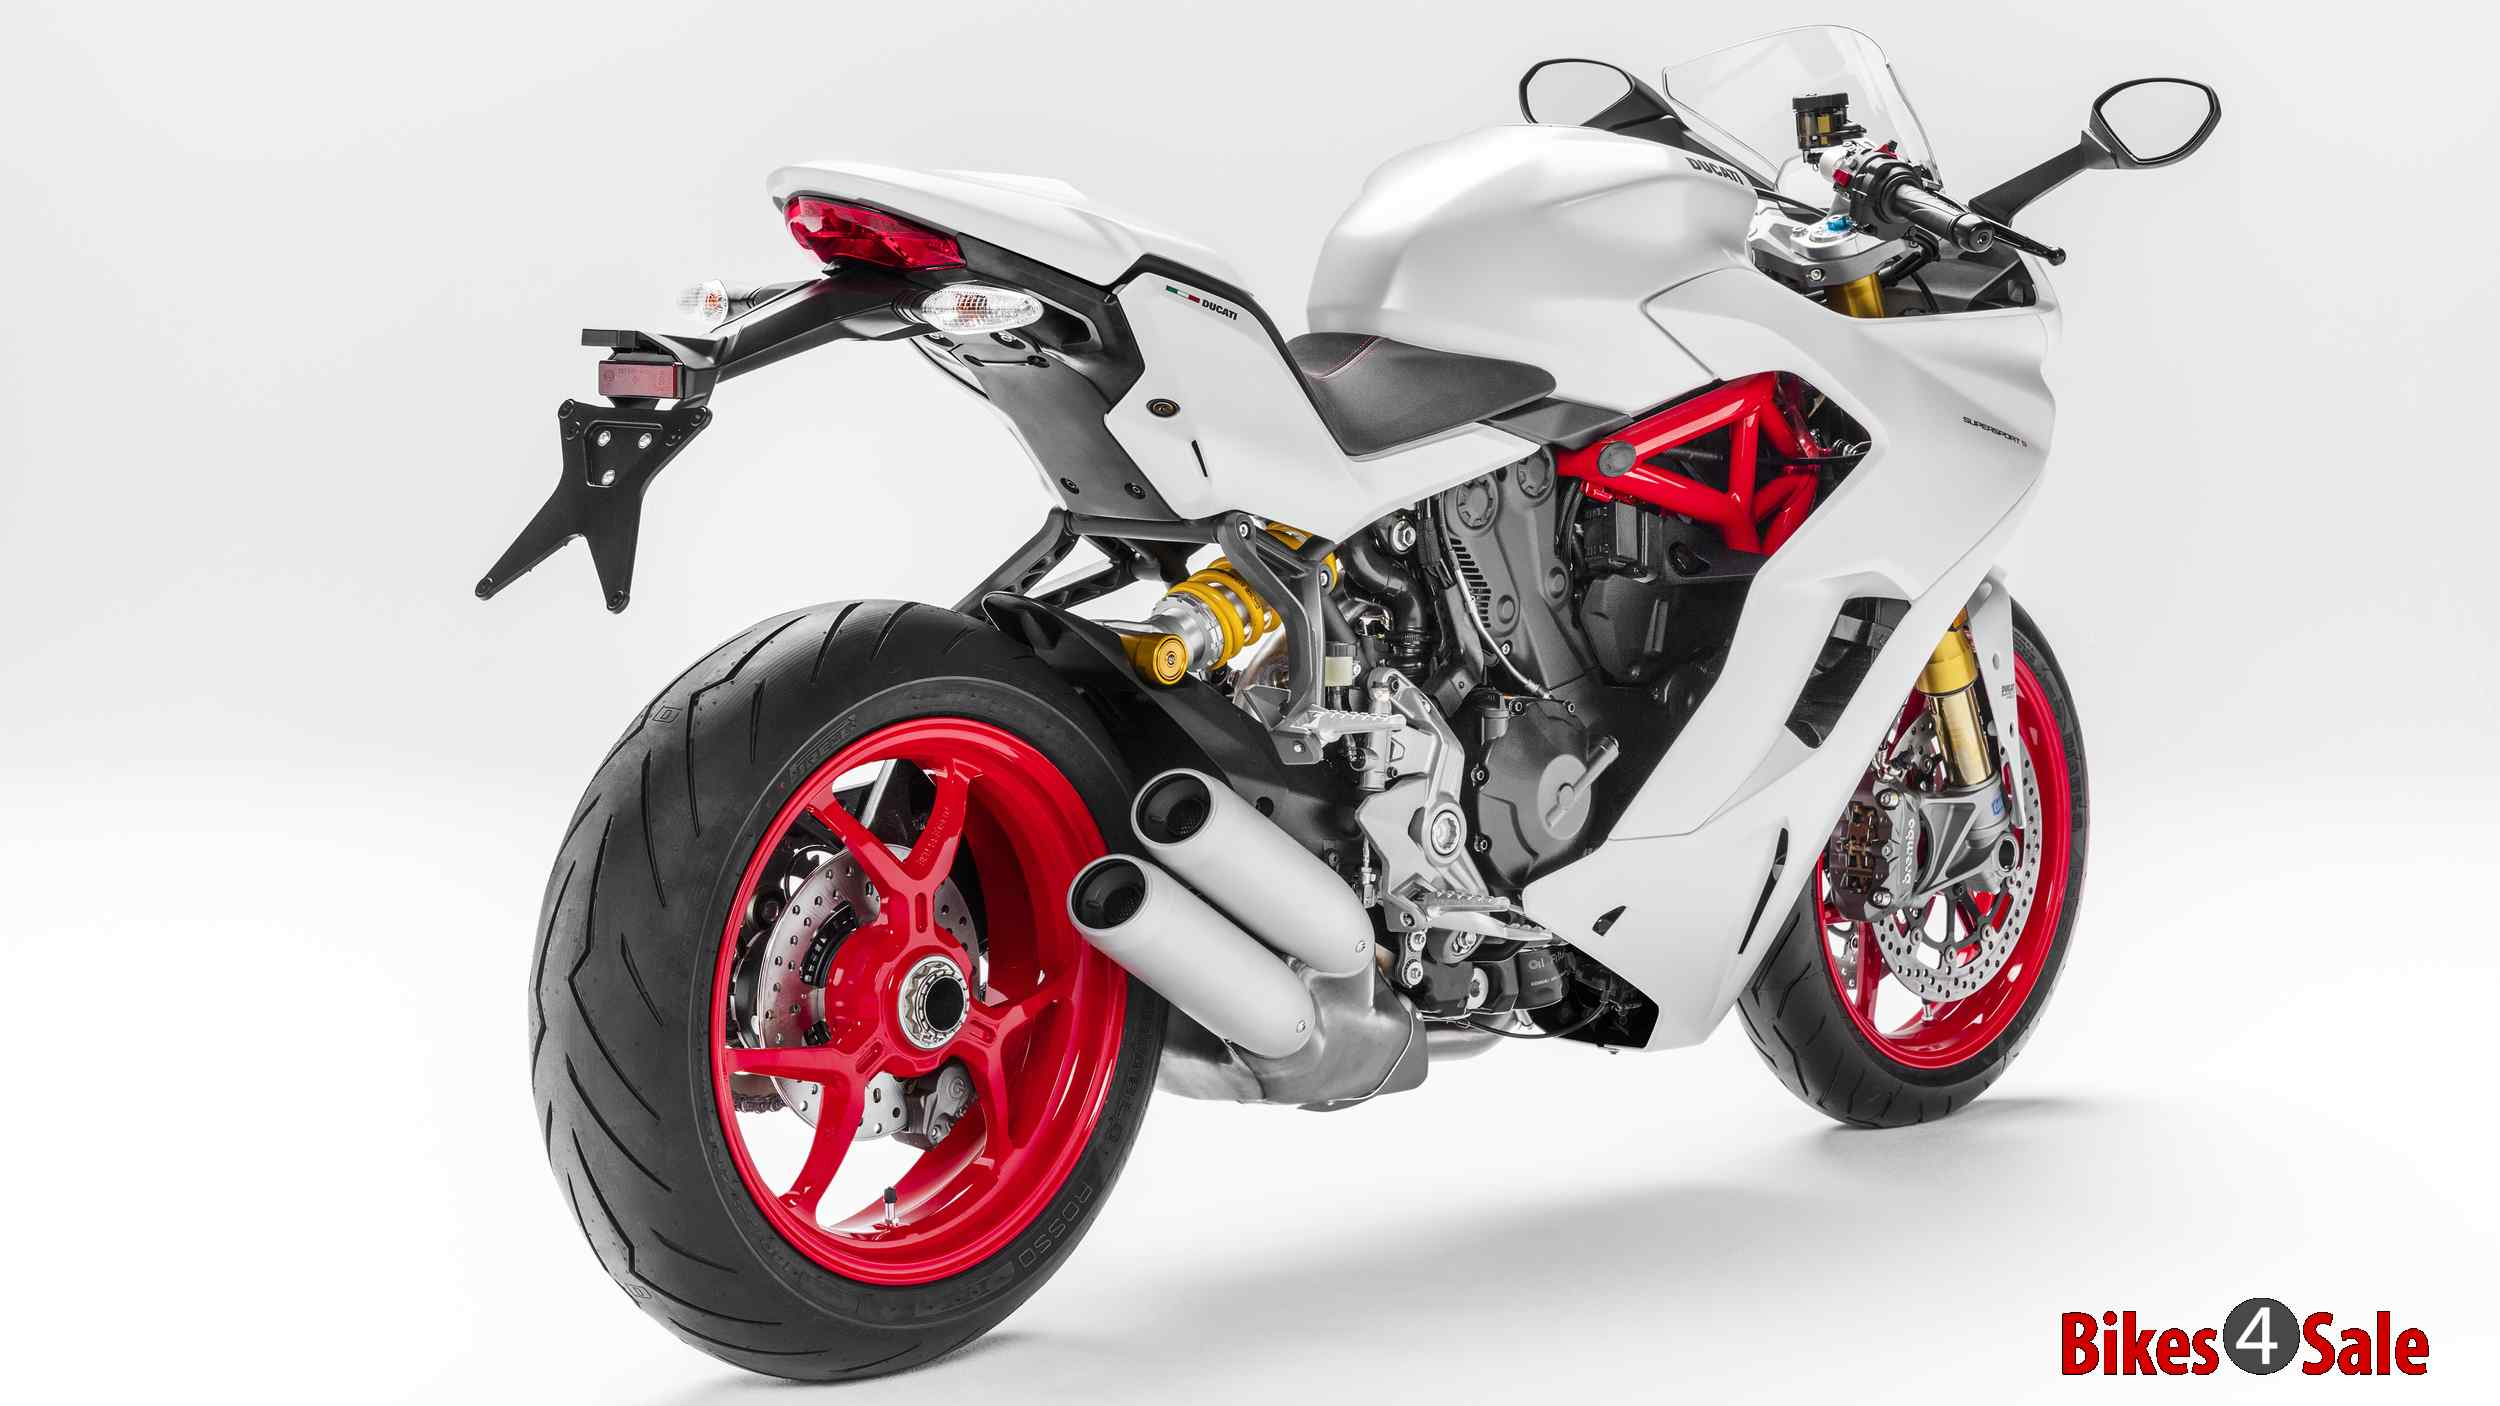 Ducati Supersport Rear View